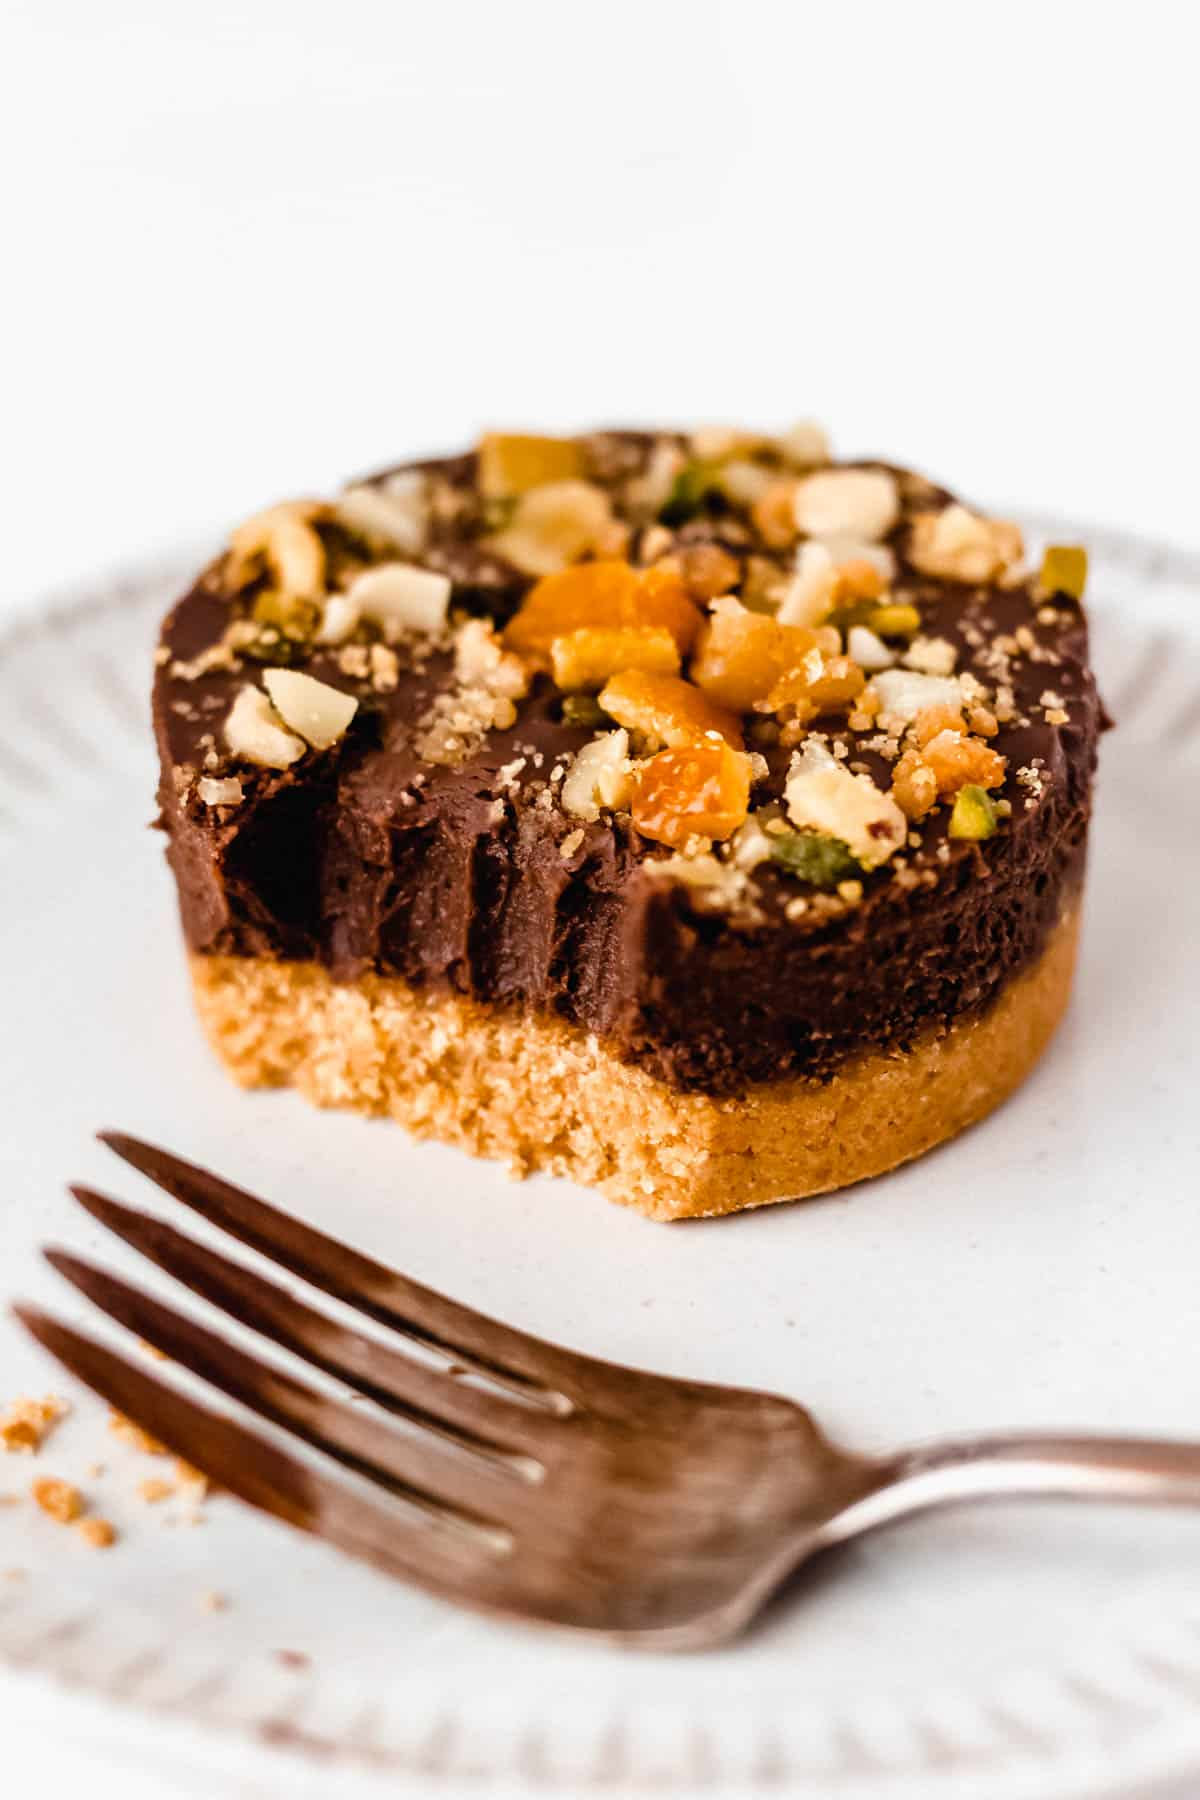 Hazelnut Gianduja Cake on a white plate with a bite taken out and a fork